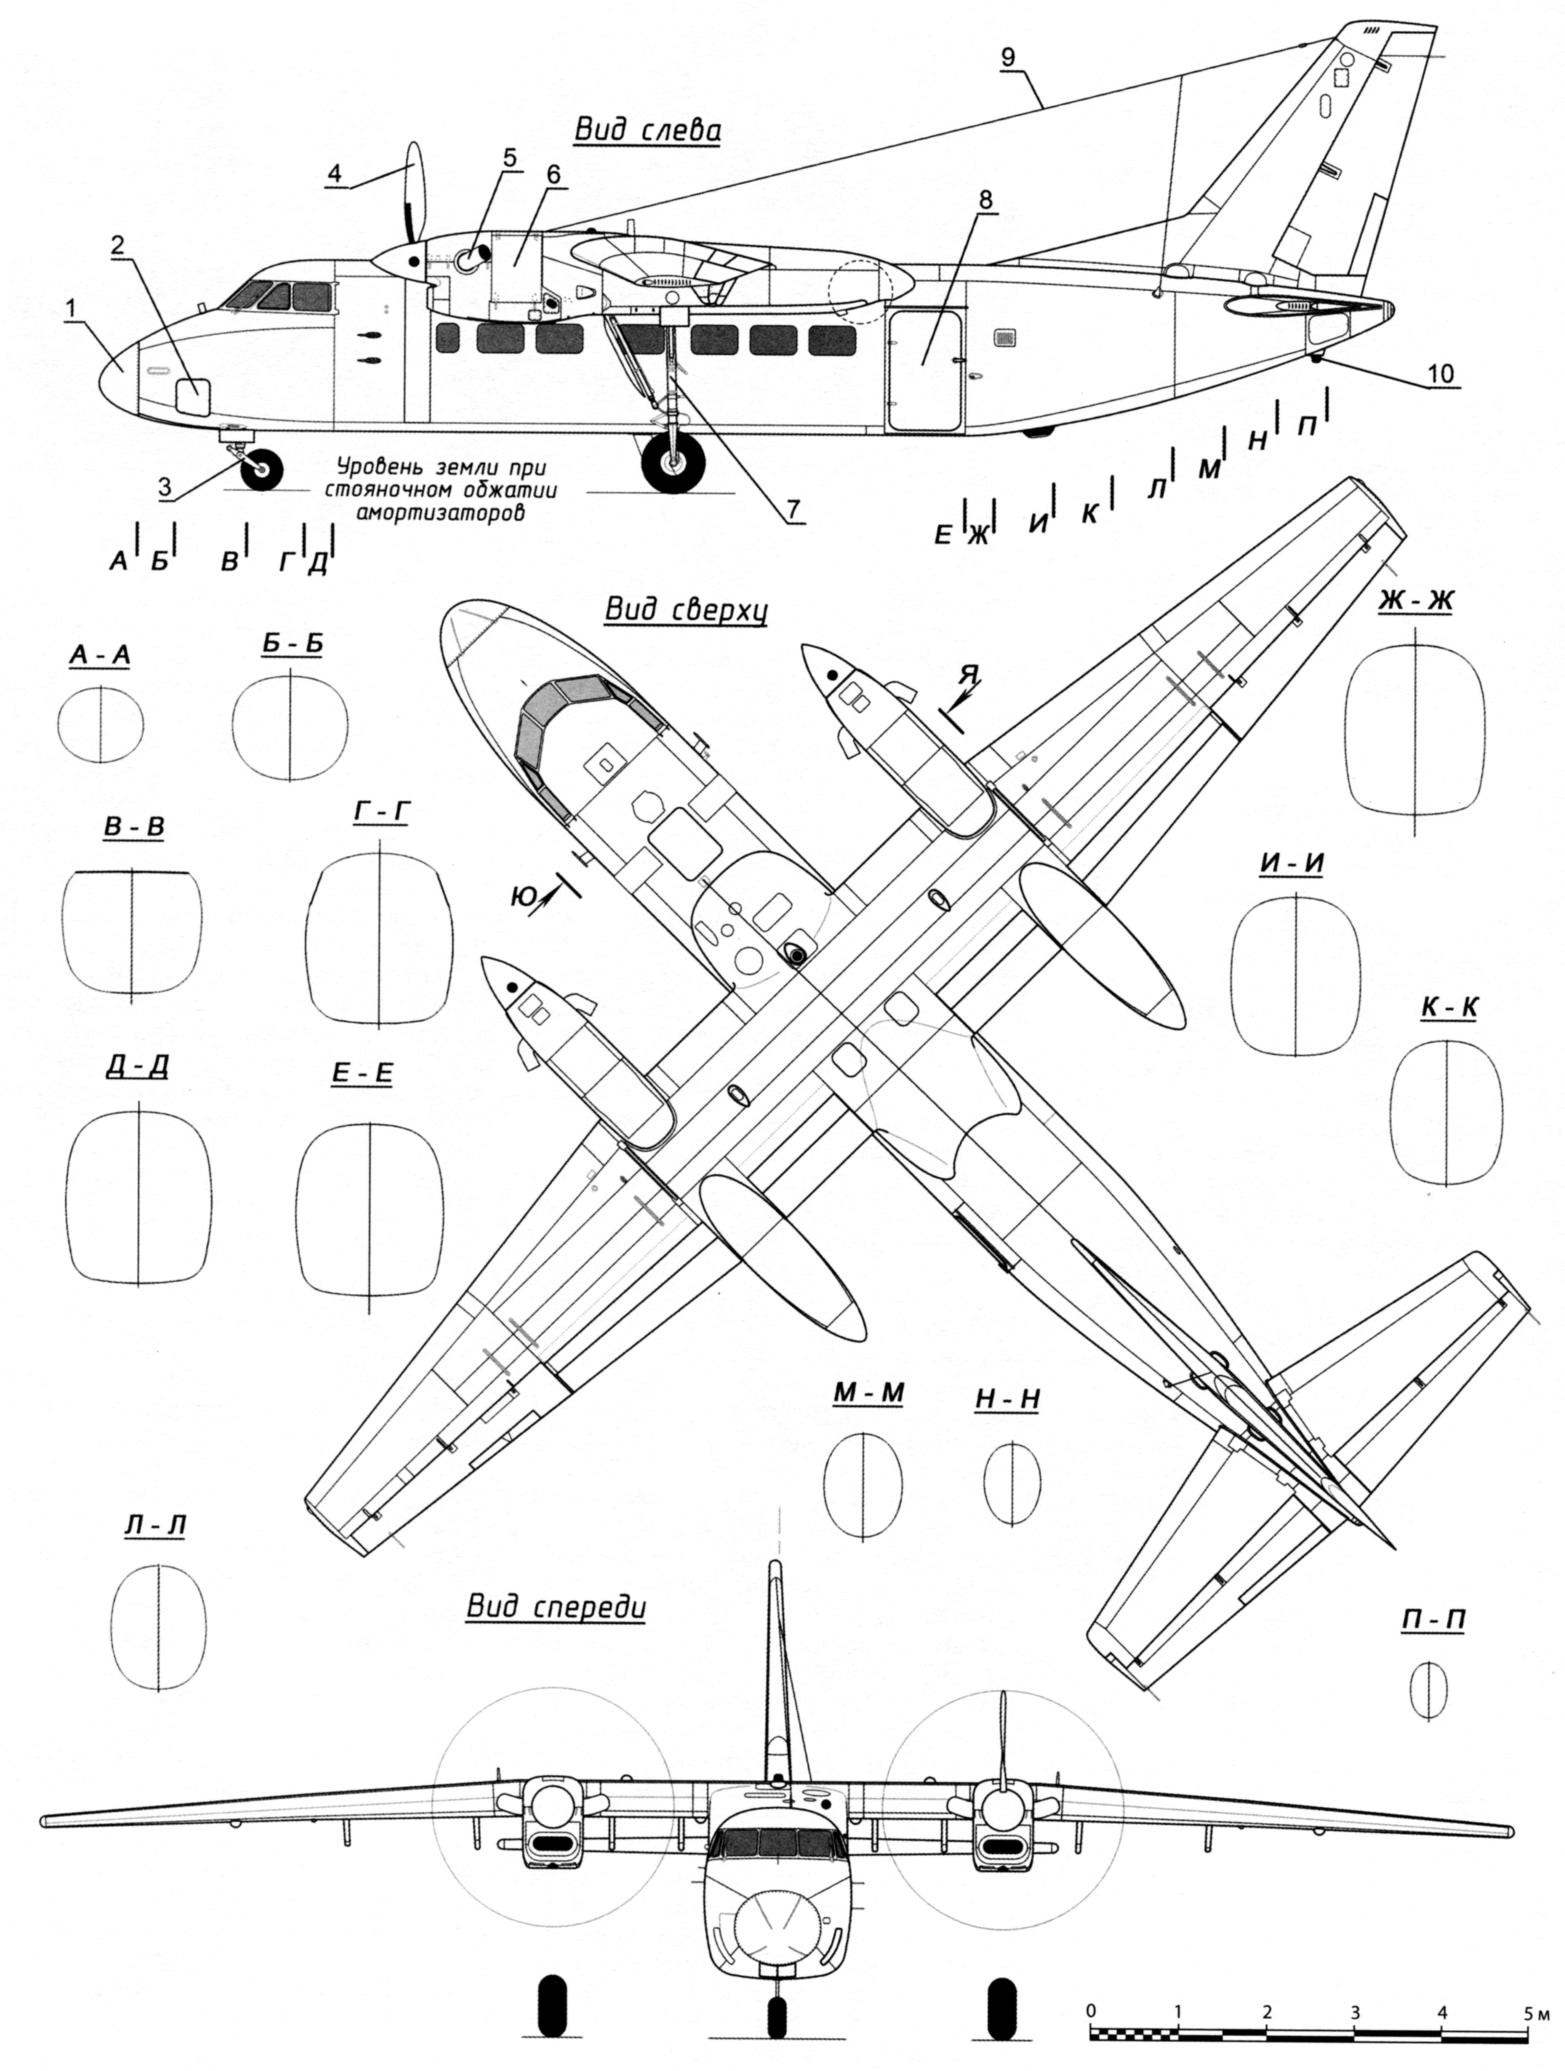 Aircraft of the be-32K